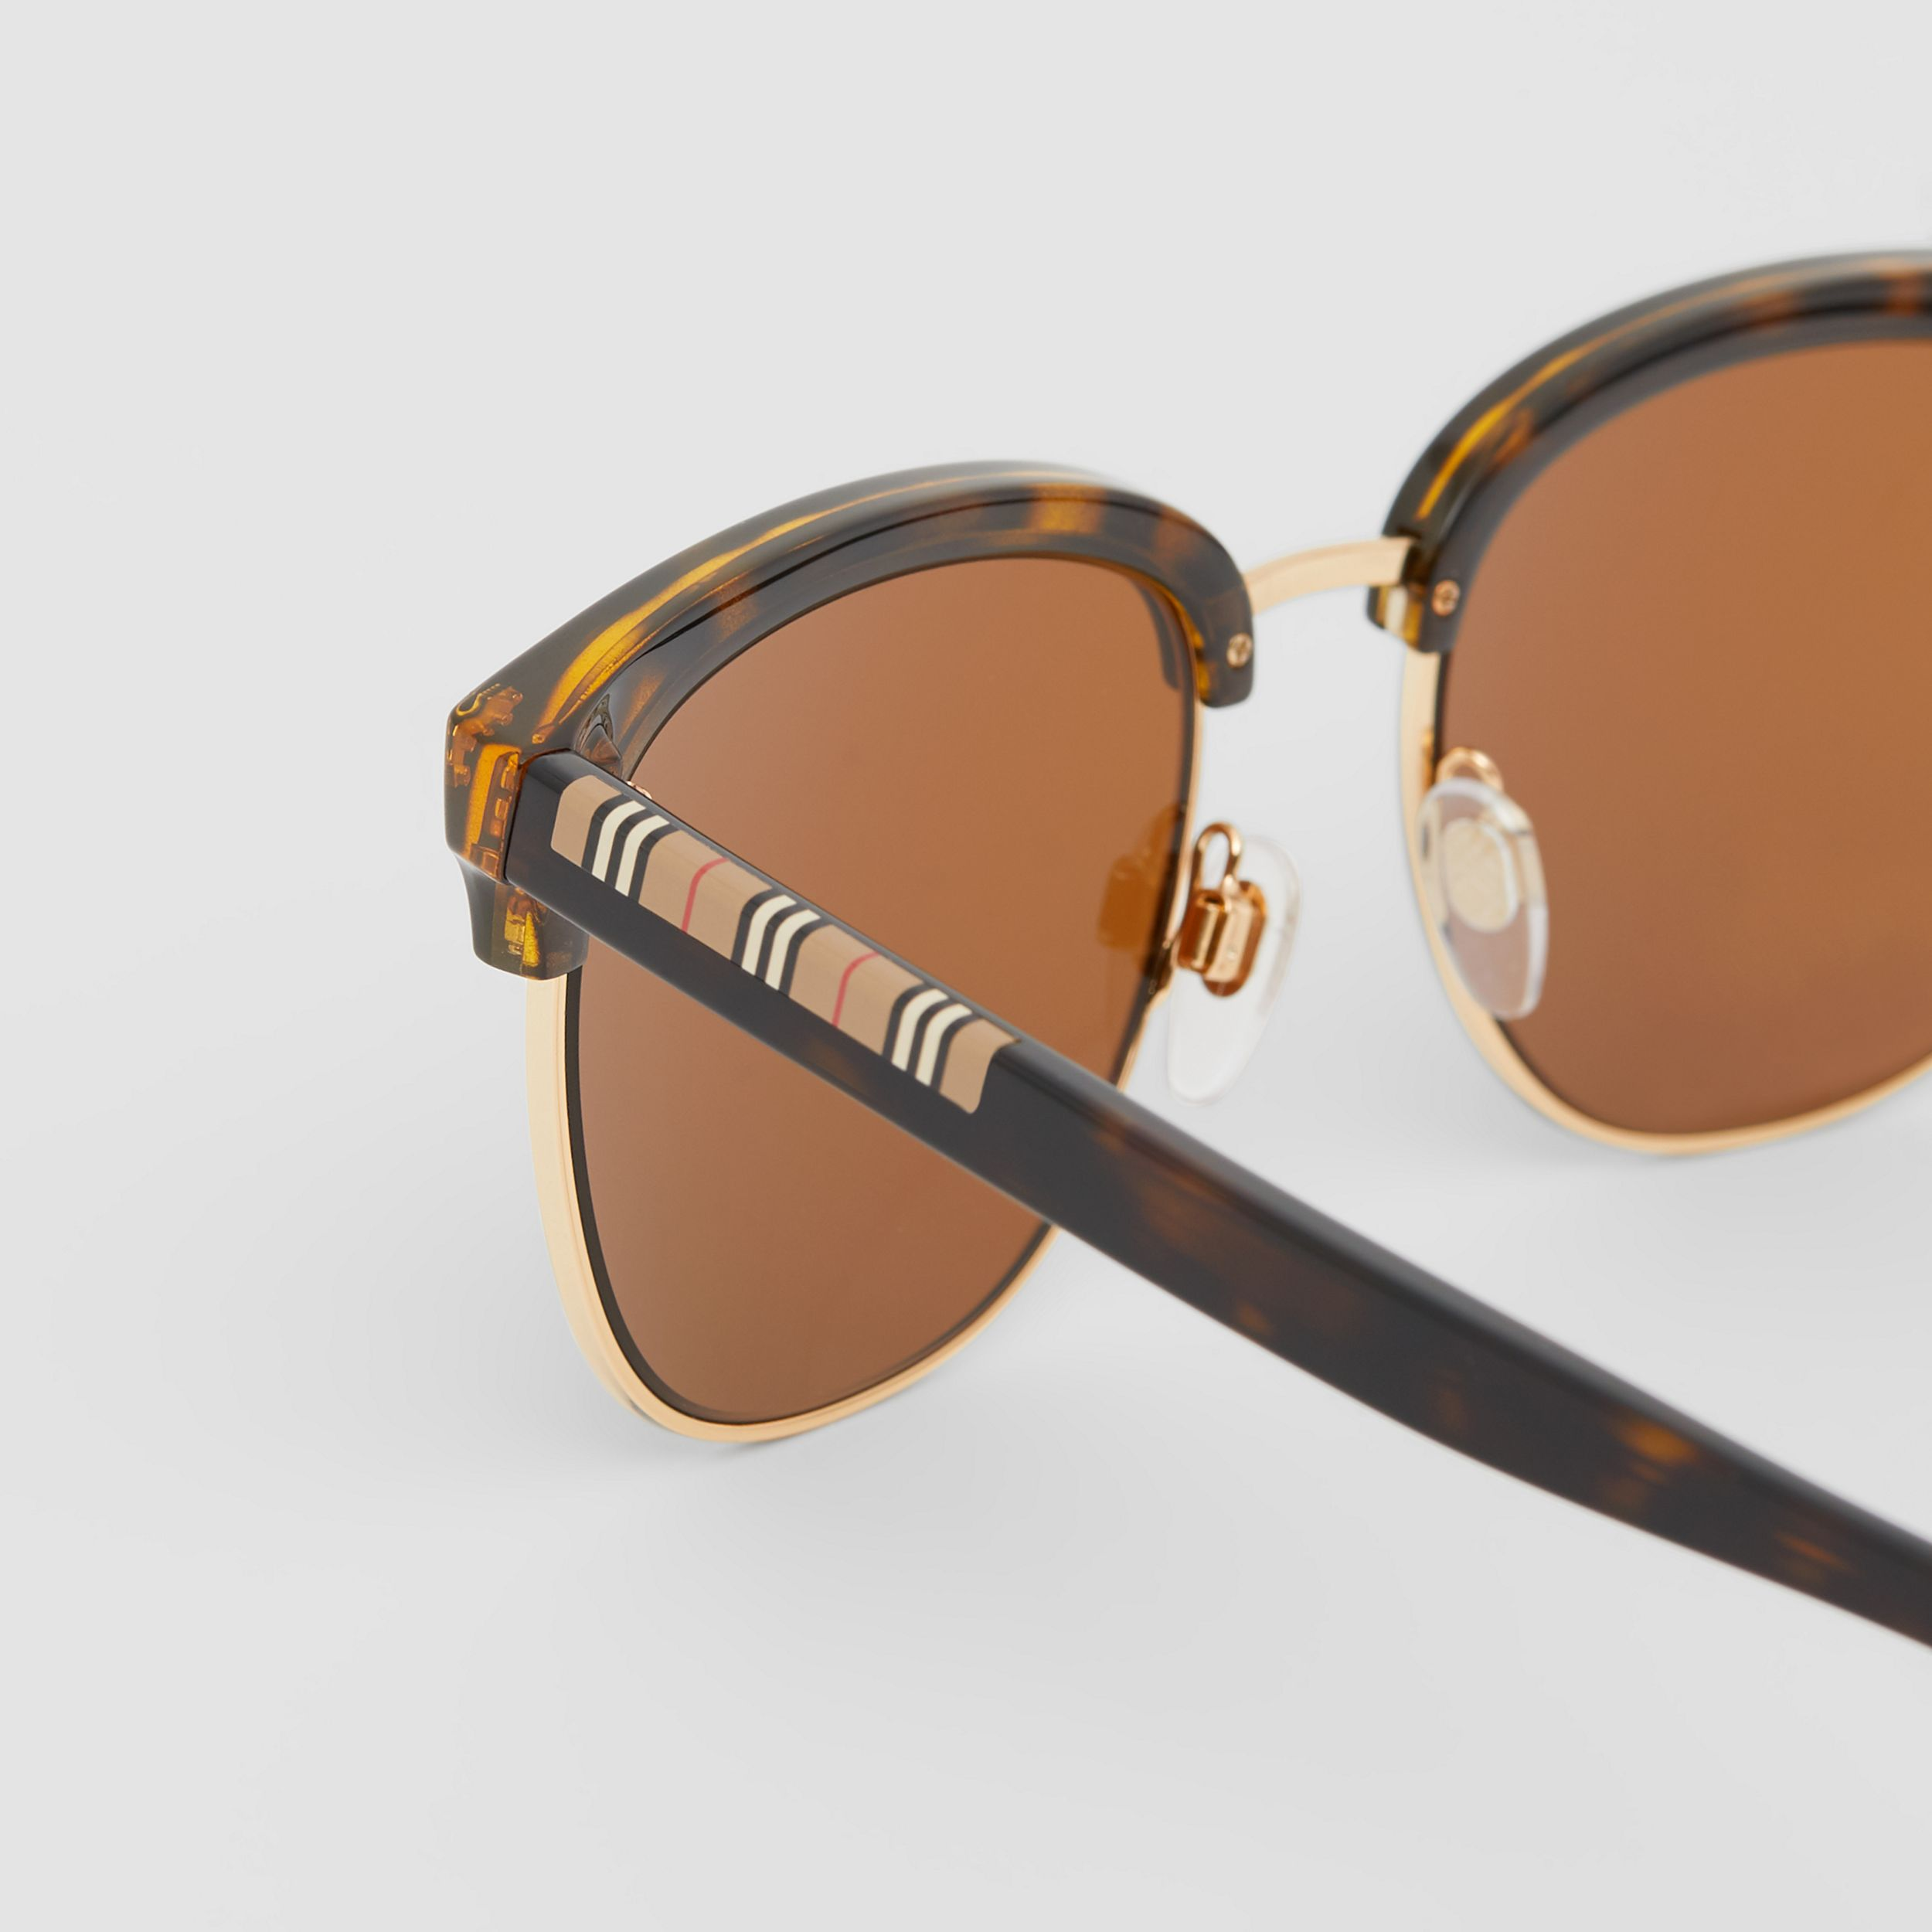 Icon Stripe Detail Square Frame Sunglasses in Tortoiseshell - Men | Burberry - 2